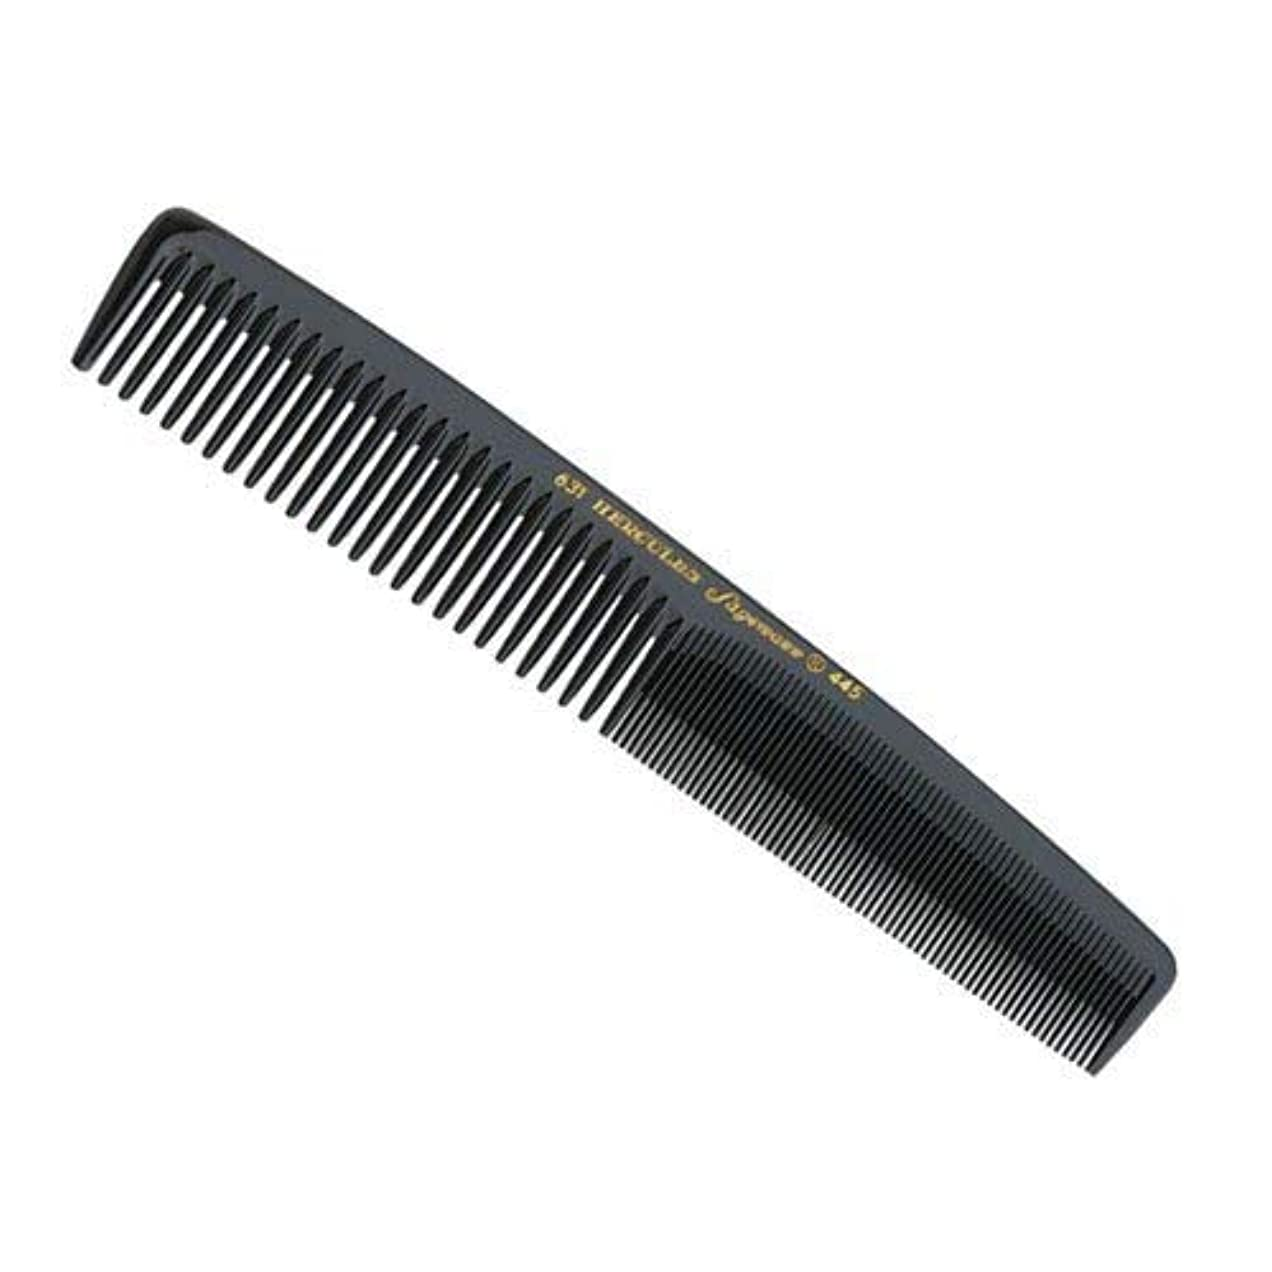 コストポルトガル語アスリートHercules Sagemann Medium Waver Ladies Hair Comb, Length-17.8 cm [並行輸入品]